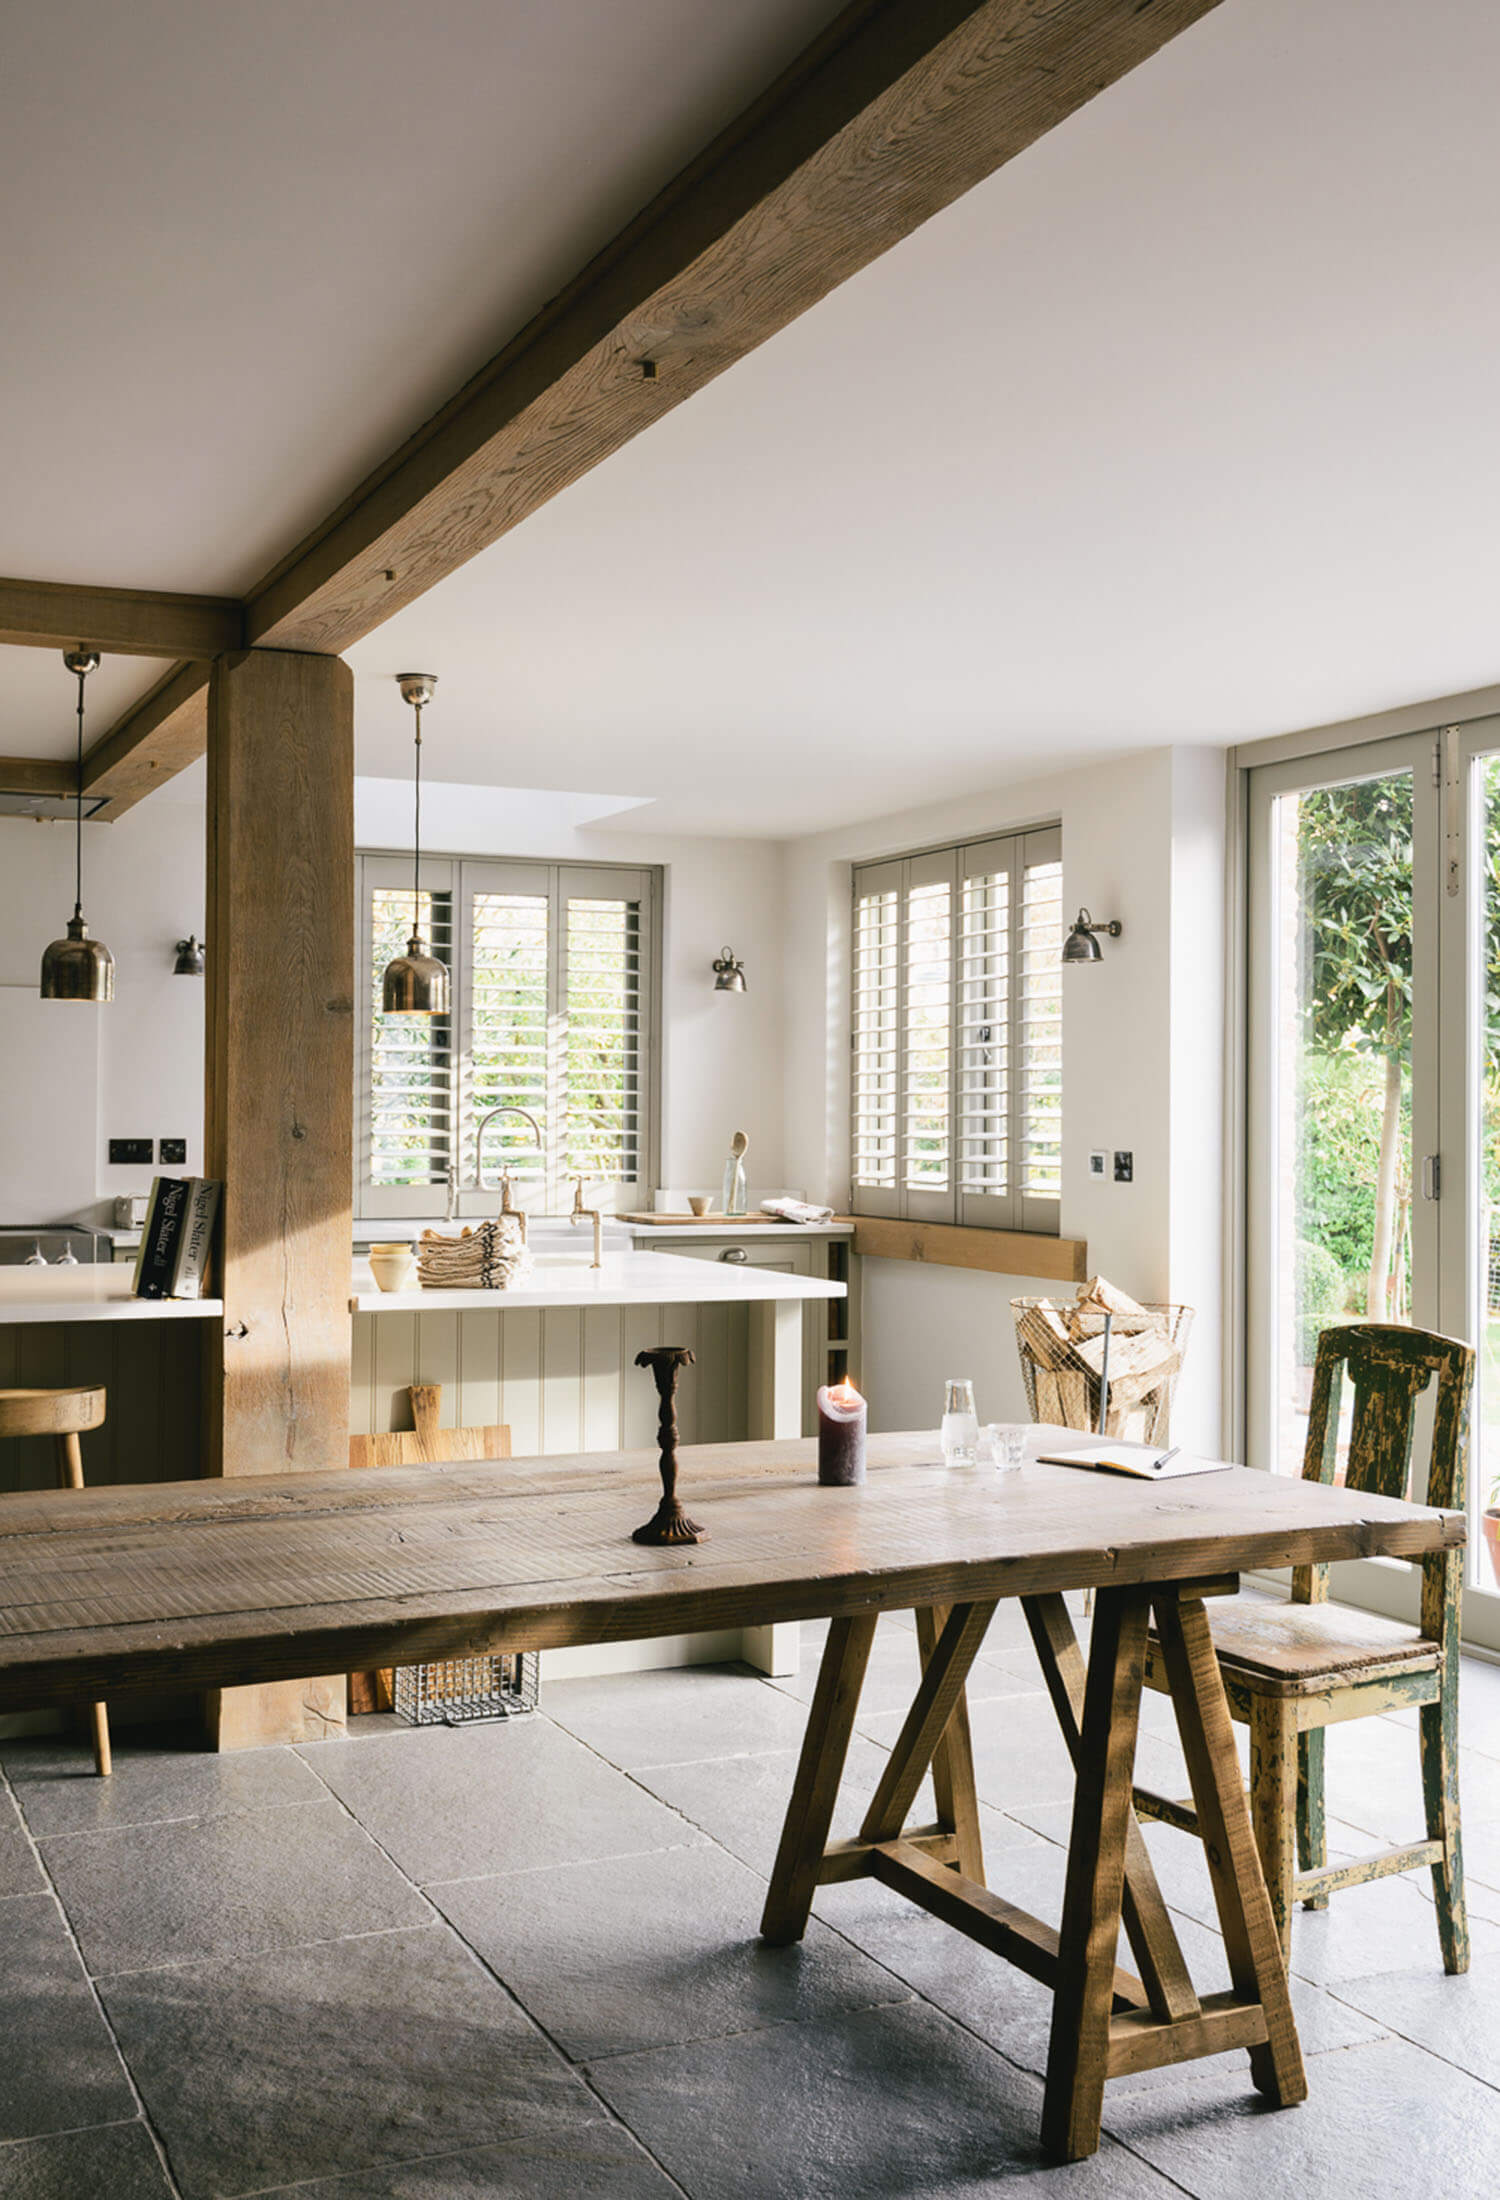 est living the real shaker kitchen henley times.01